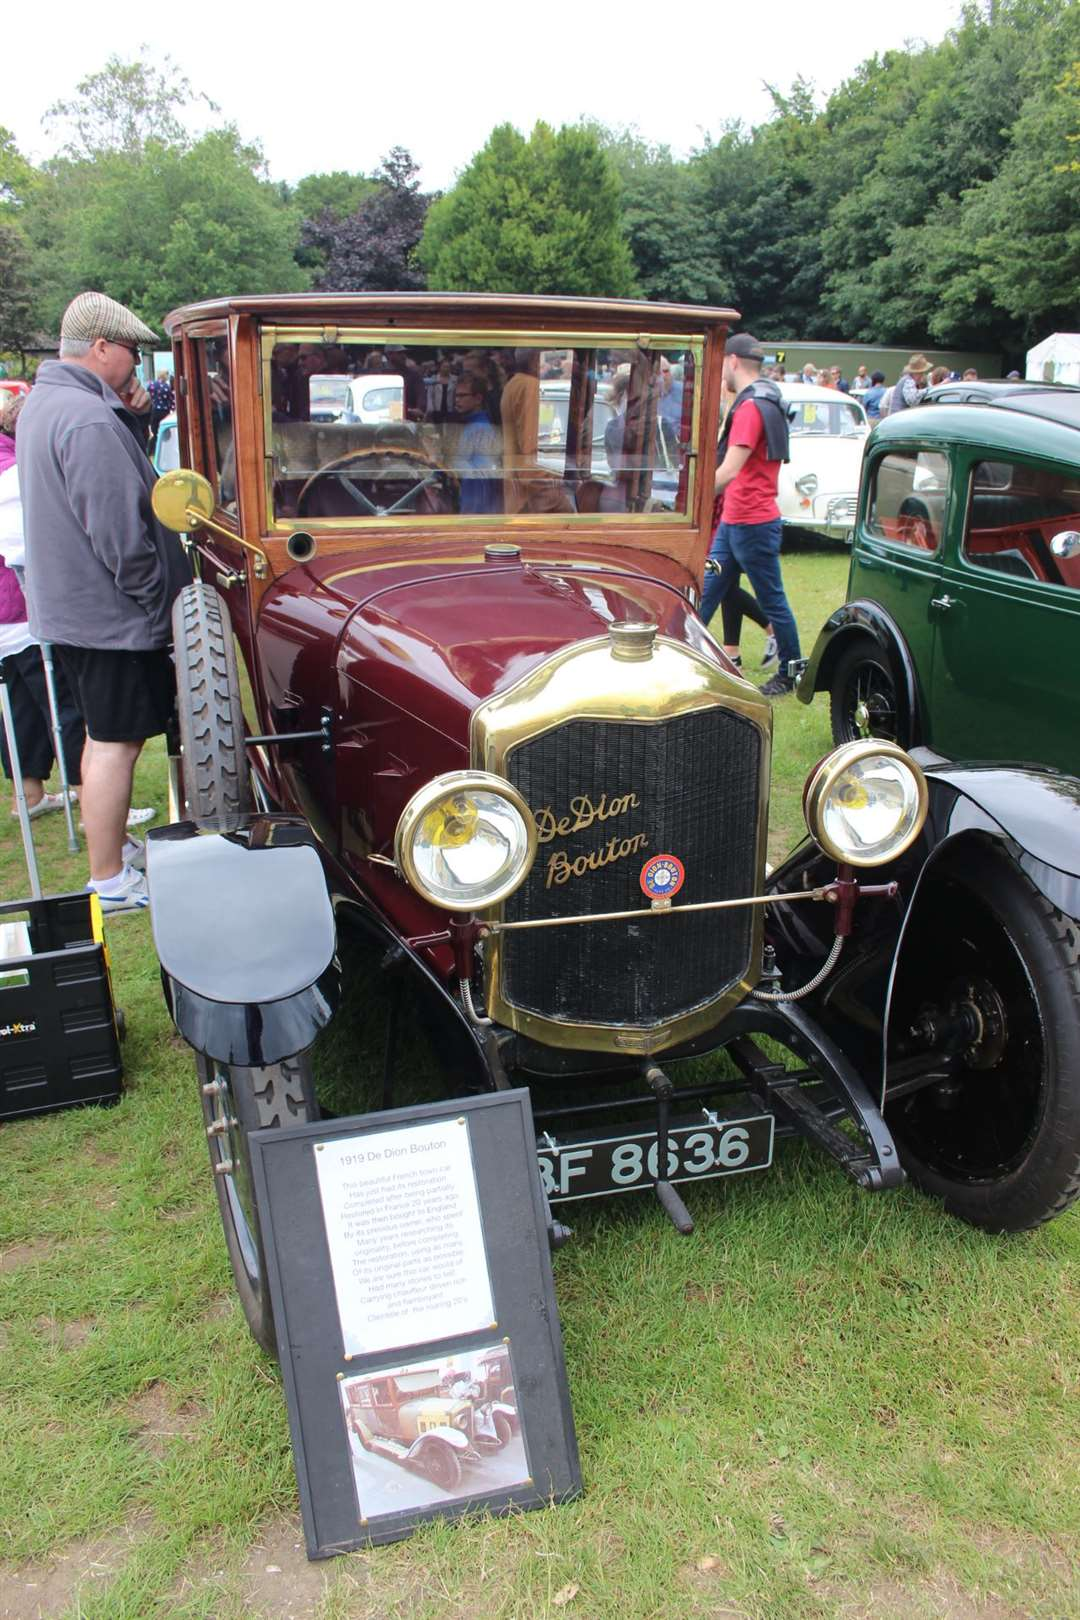 Classic car: This 1919 De Dion Bouton from France was exhibited at the Kent County Show by Paul Weeks who runs the Sweet Hut on Minster Leas, Sheppey (13545709)